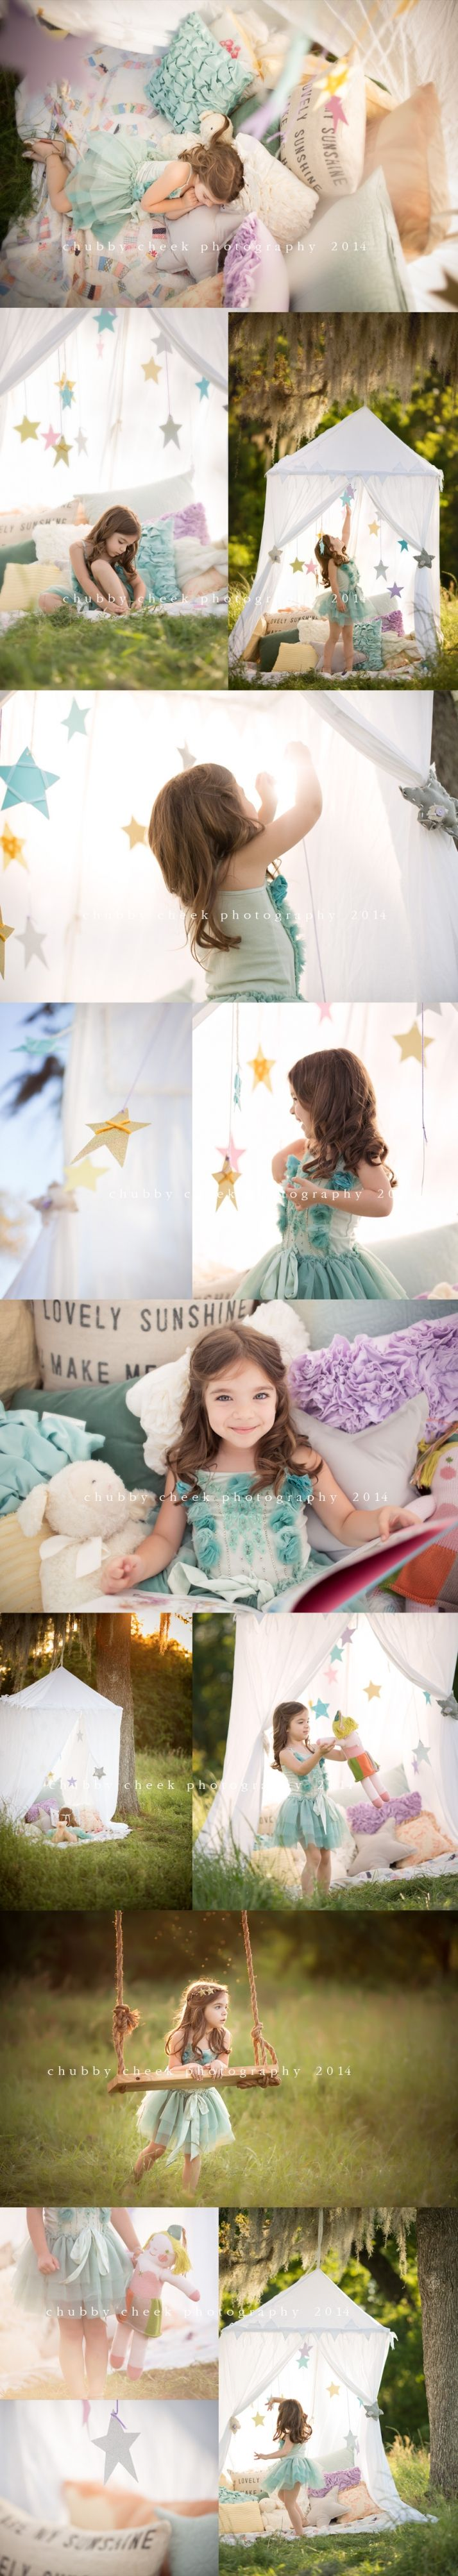 """Fun new """"All About Me"""" session from one of our favorite family photographers. © Chubby Cheek Photography.  #familyphotography #styledsessions"""